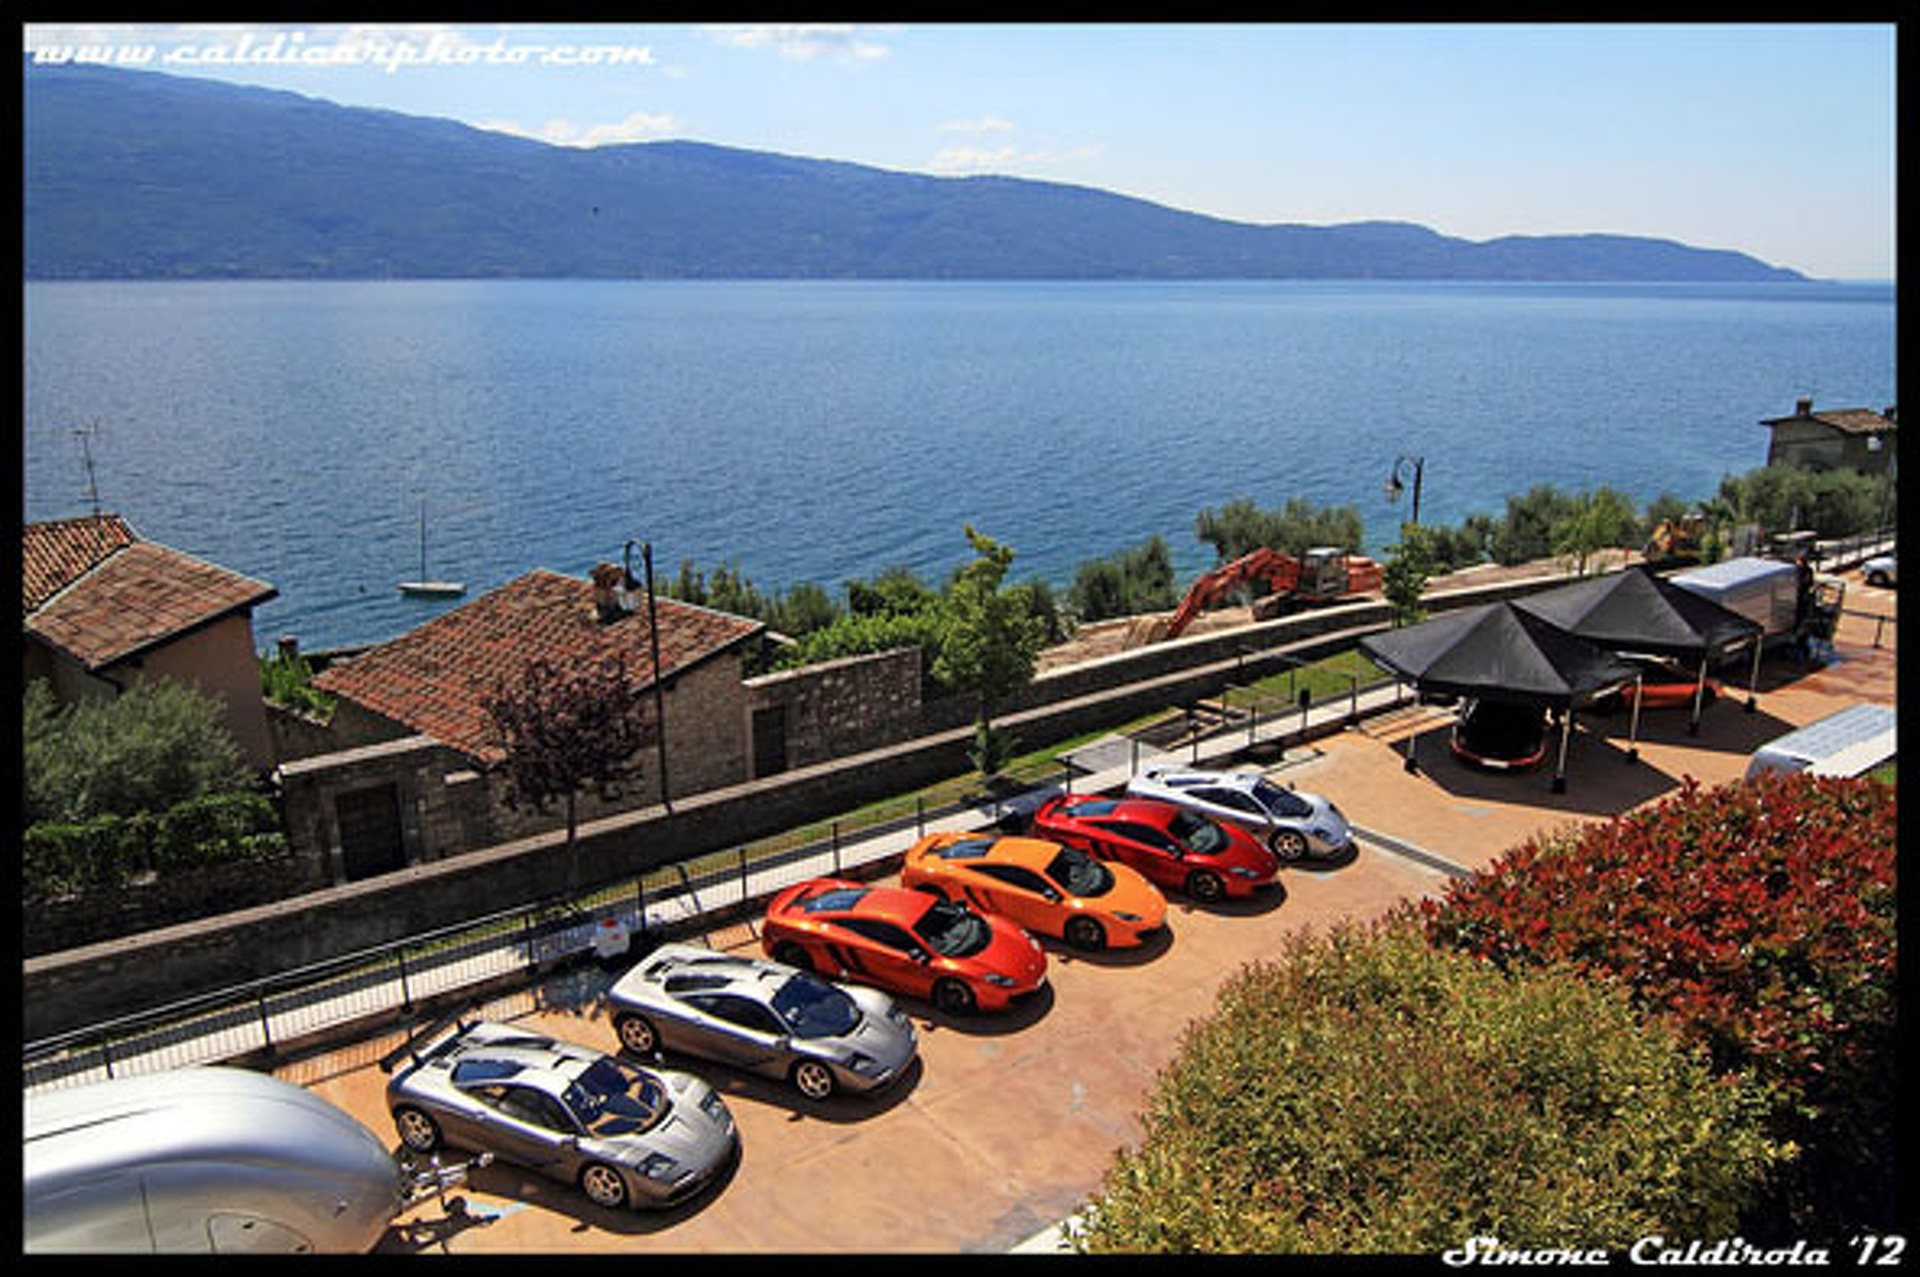 Exclusive: The Cars of the McLaren F1 Tour